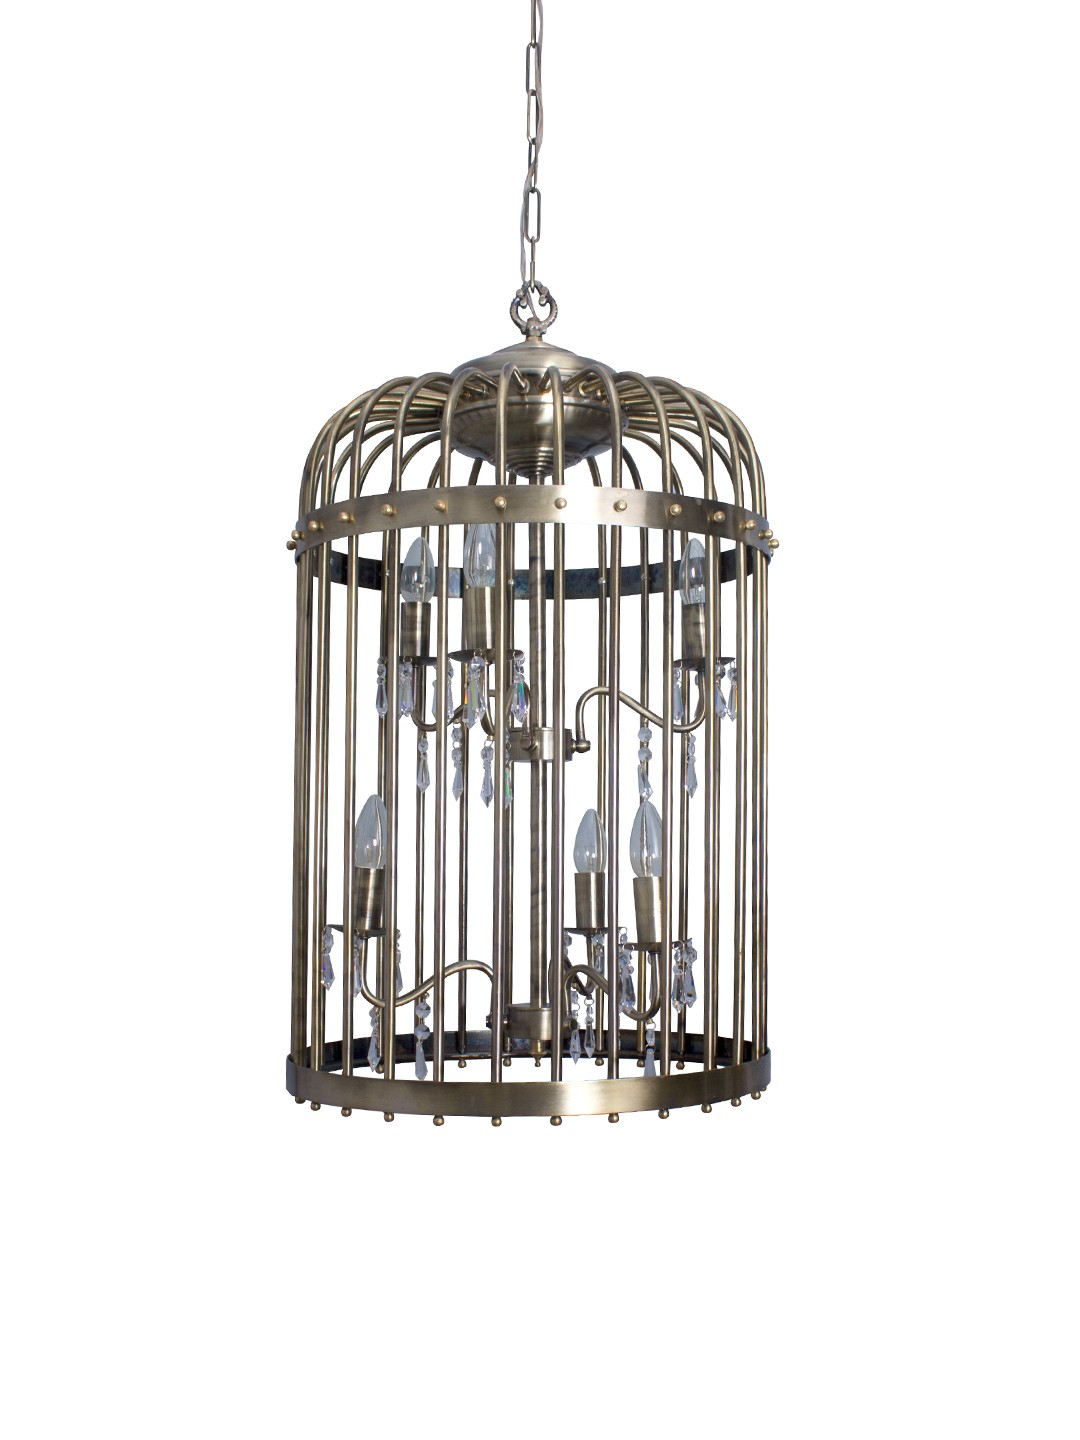 Antique Finished 6 light Birdcage Hanging Light with Crystals